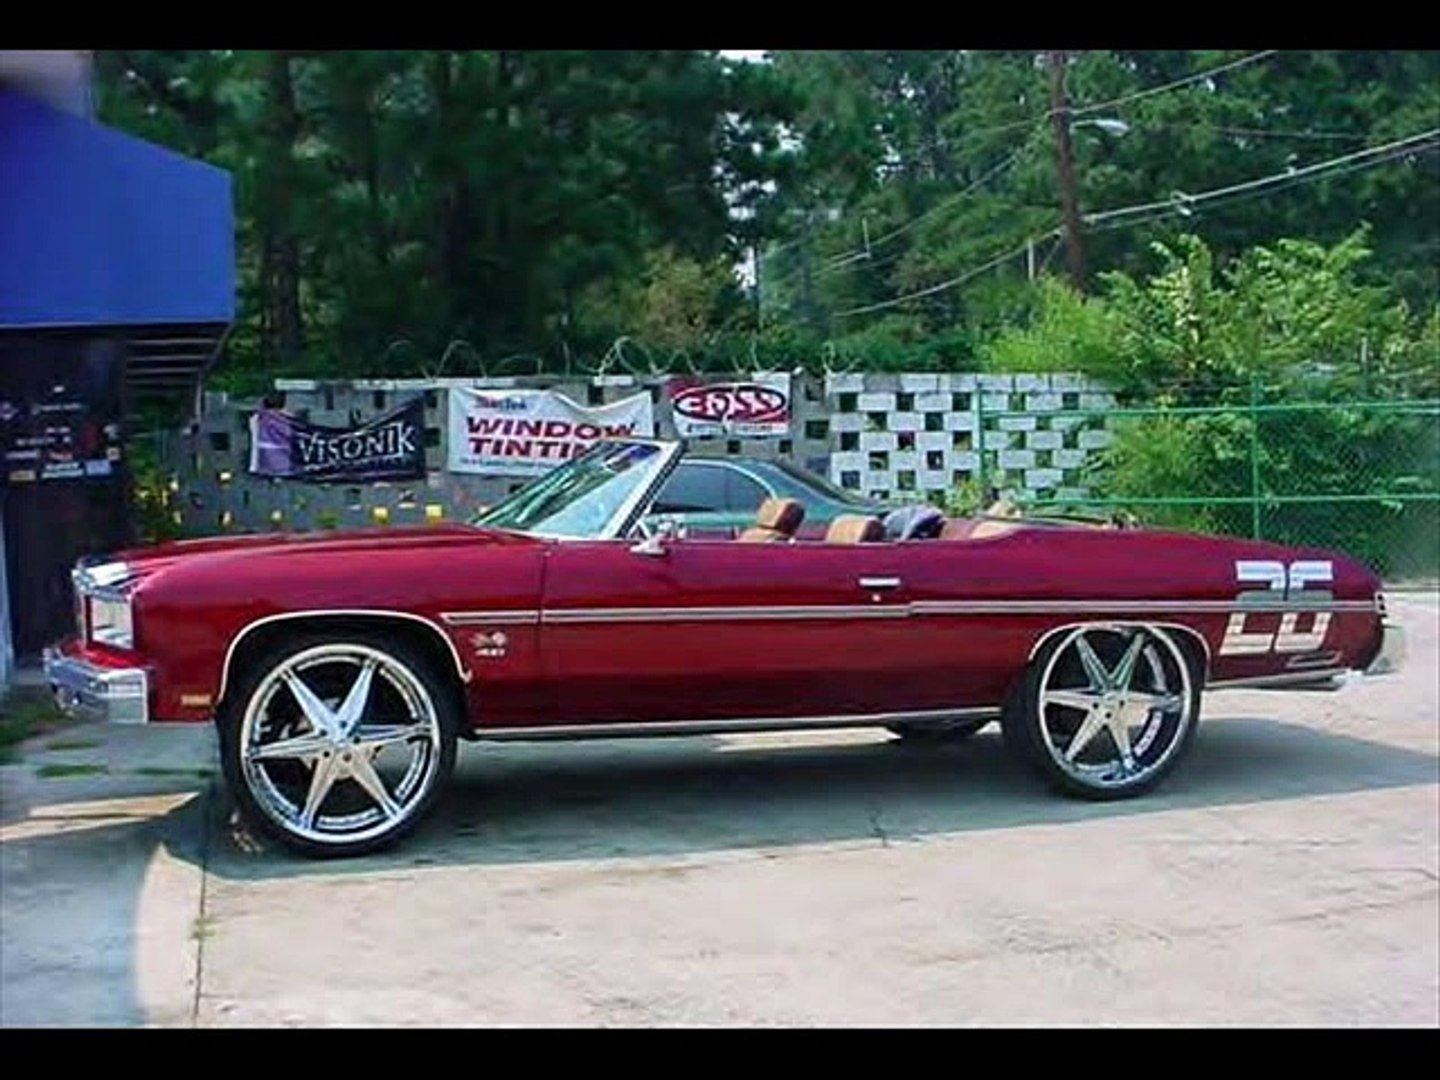 Donk cars, hydraulics, and classic car nice !!!!